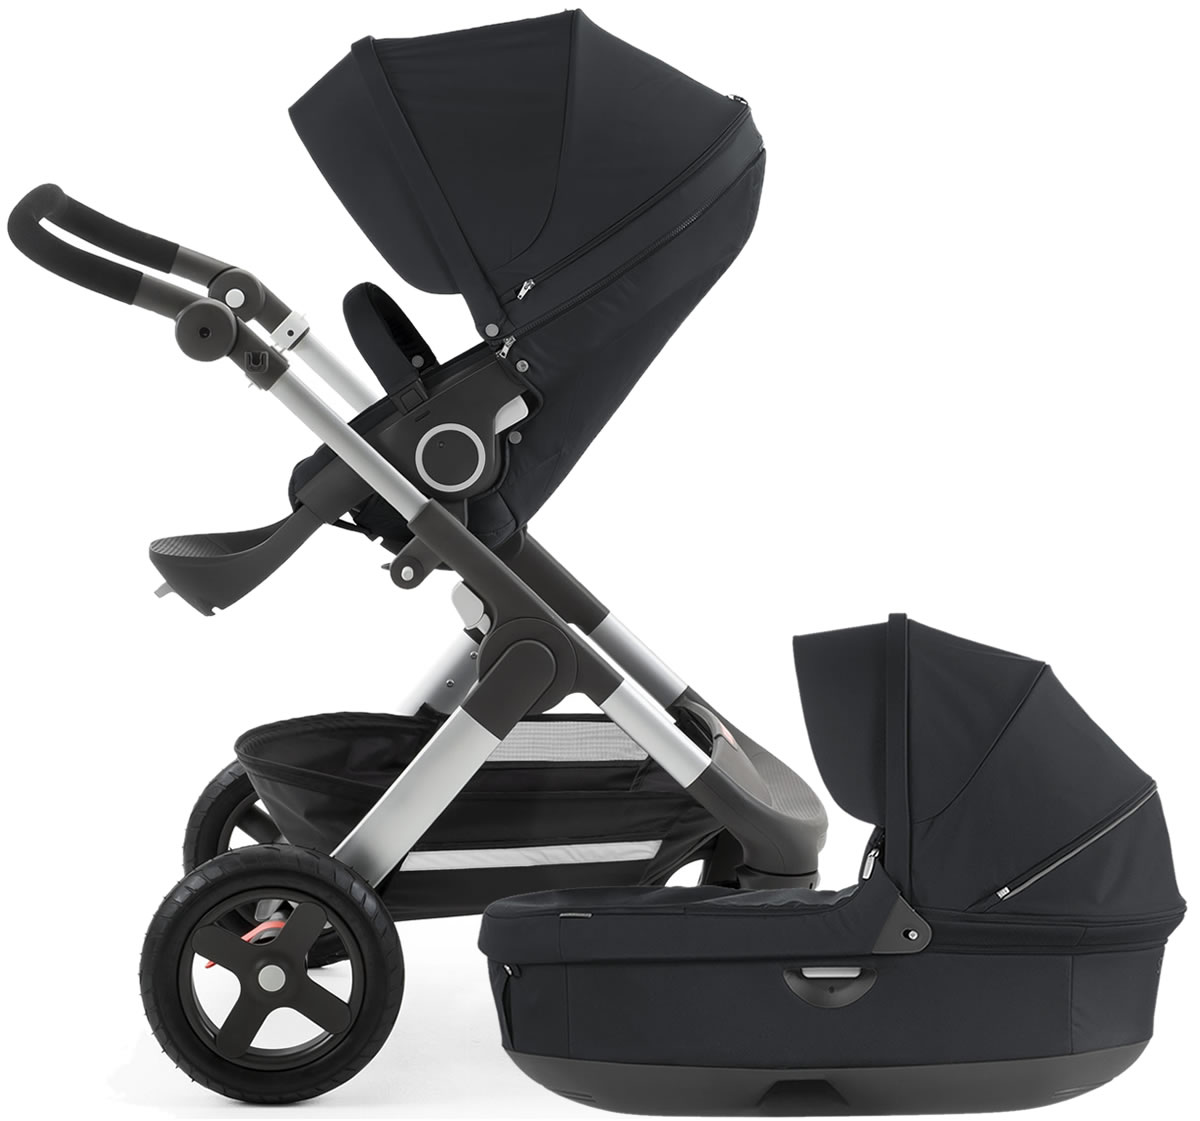 Stokke Trailz Stroller & Carrycot - Black